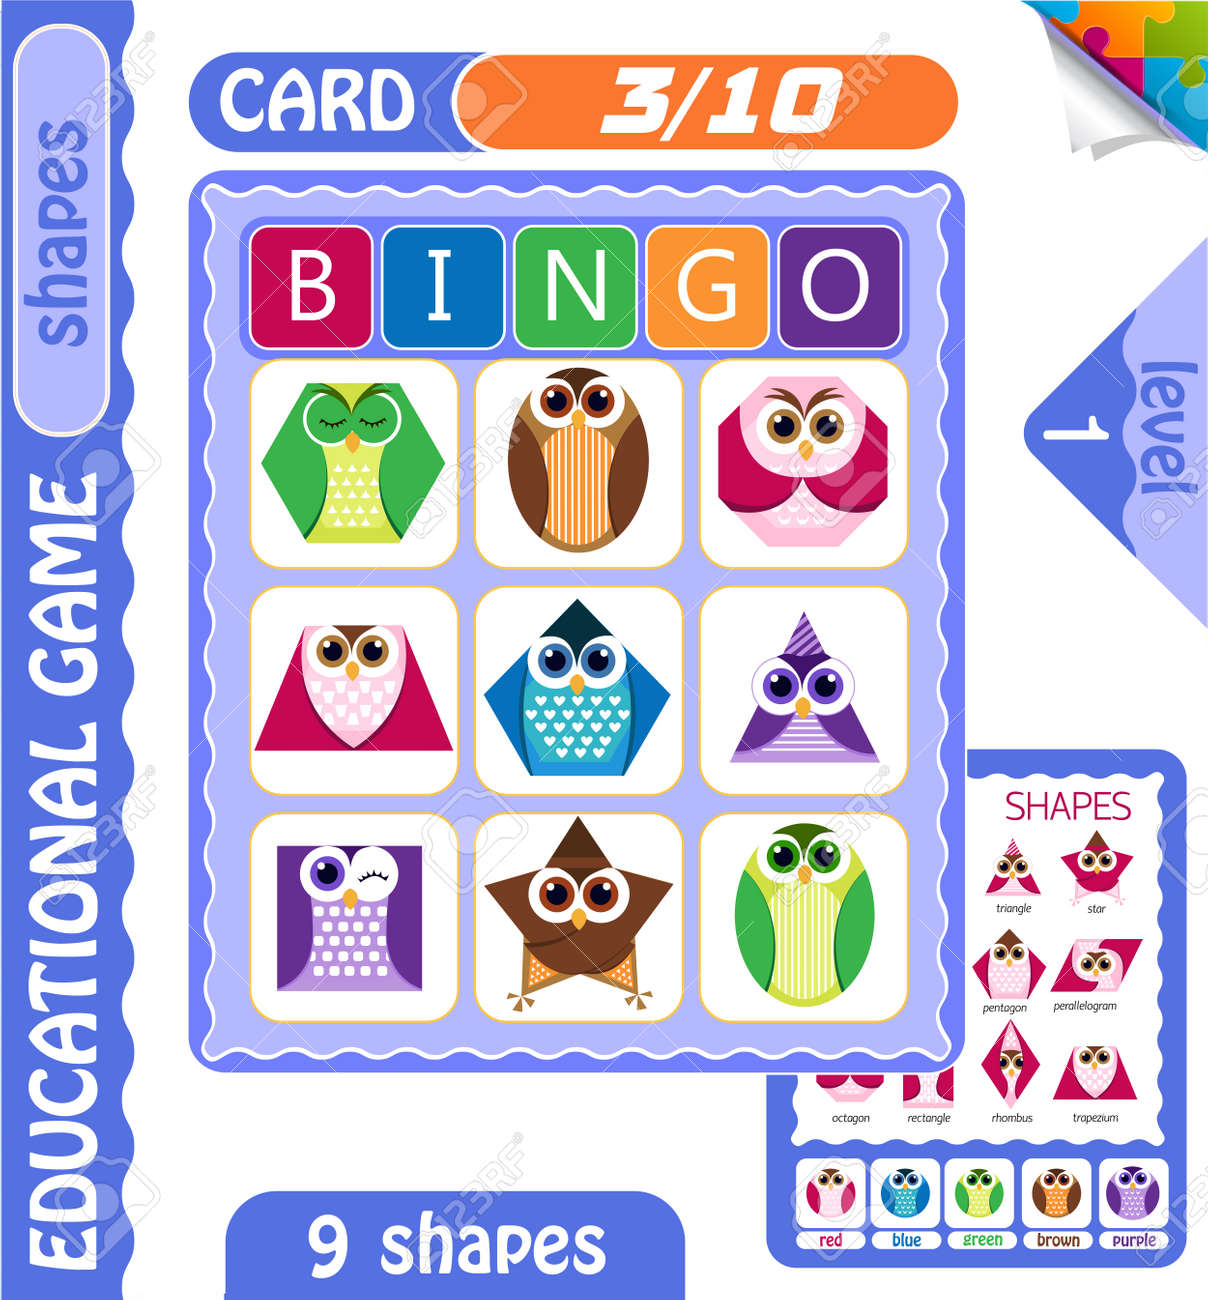 Educational Bingo Game For Preschool Kids With Shapes In The